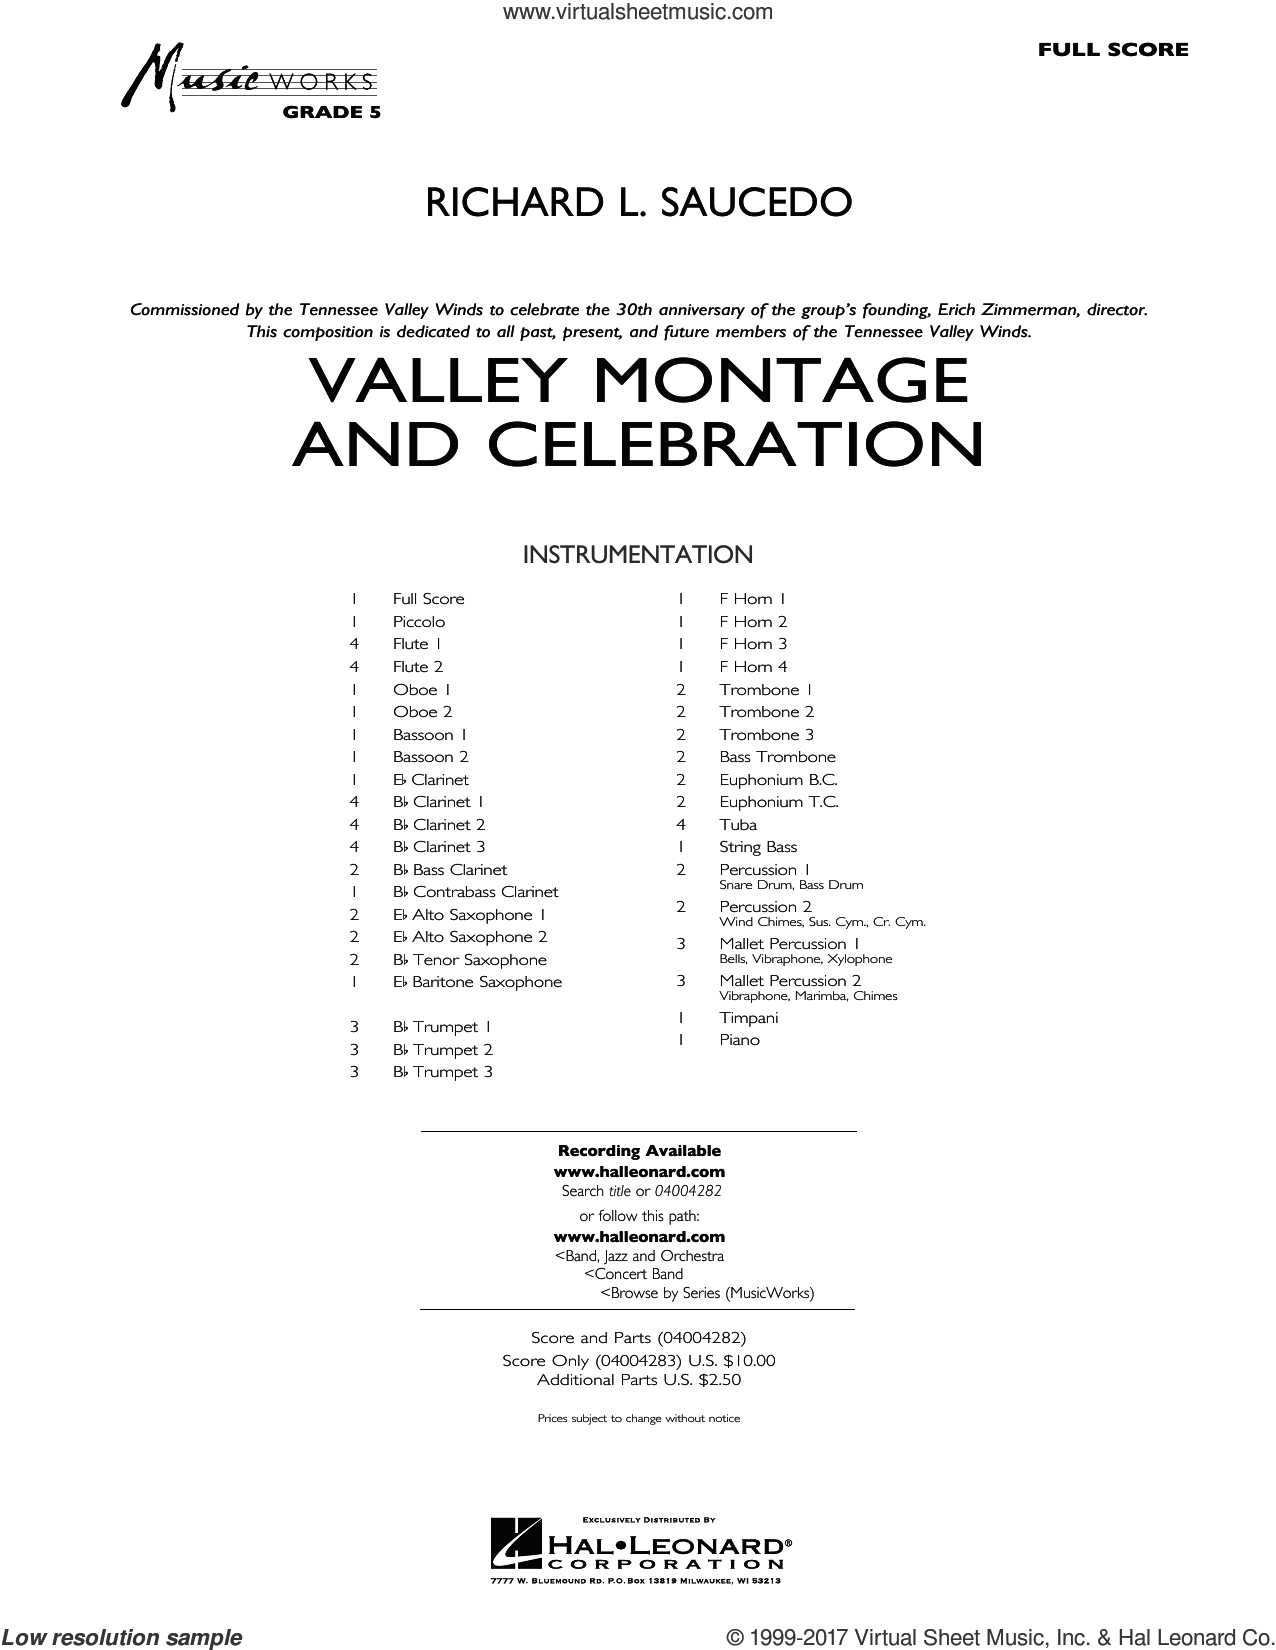 Valley Montage and Celebration (COMPLETE) sheet music for concert band by Richard L. Saucedo, intermediate skill level